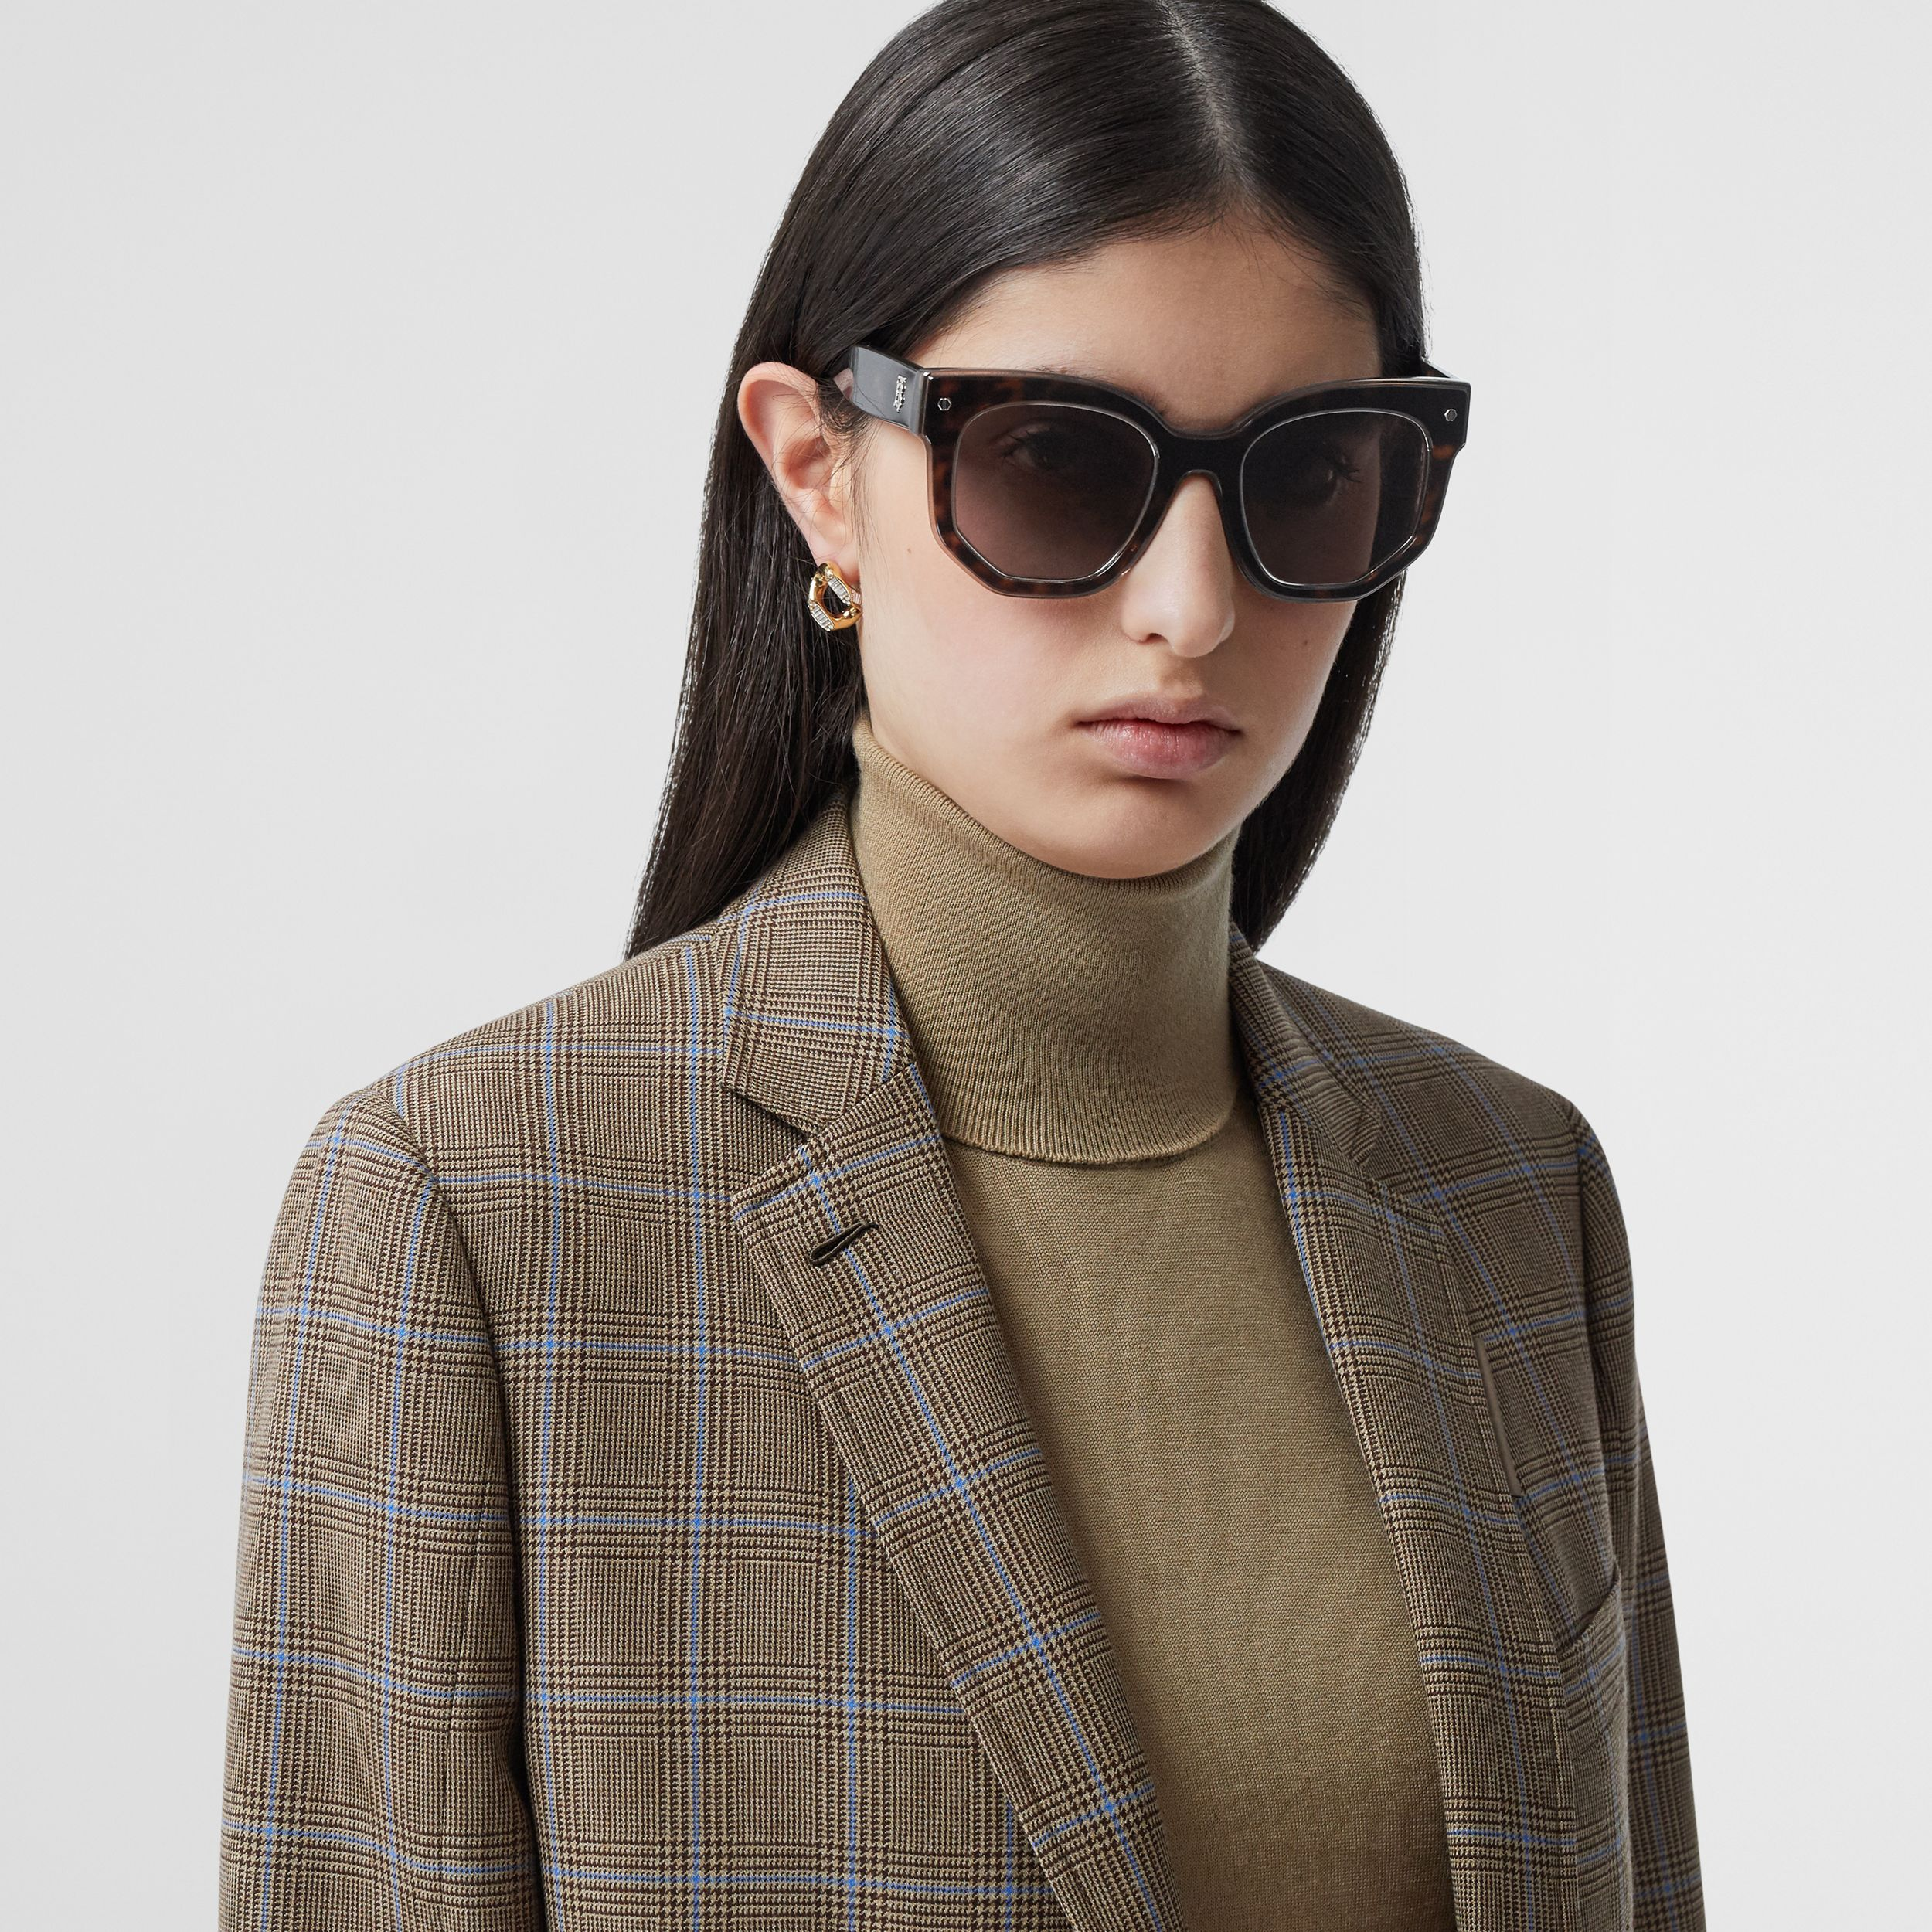 Geometric Frame Sunglasses in Tortoiseshell - Women | Burberry Canada - 3